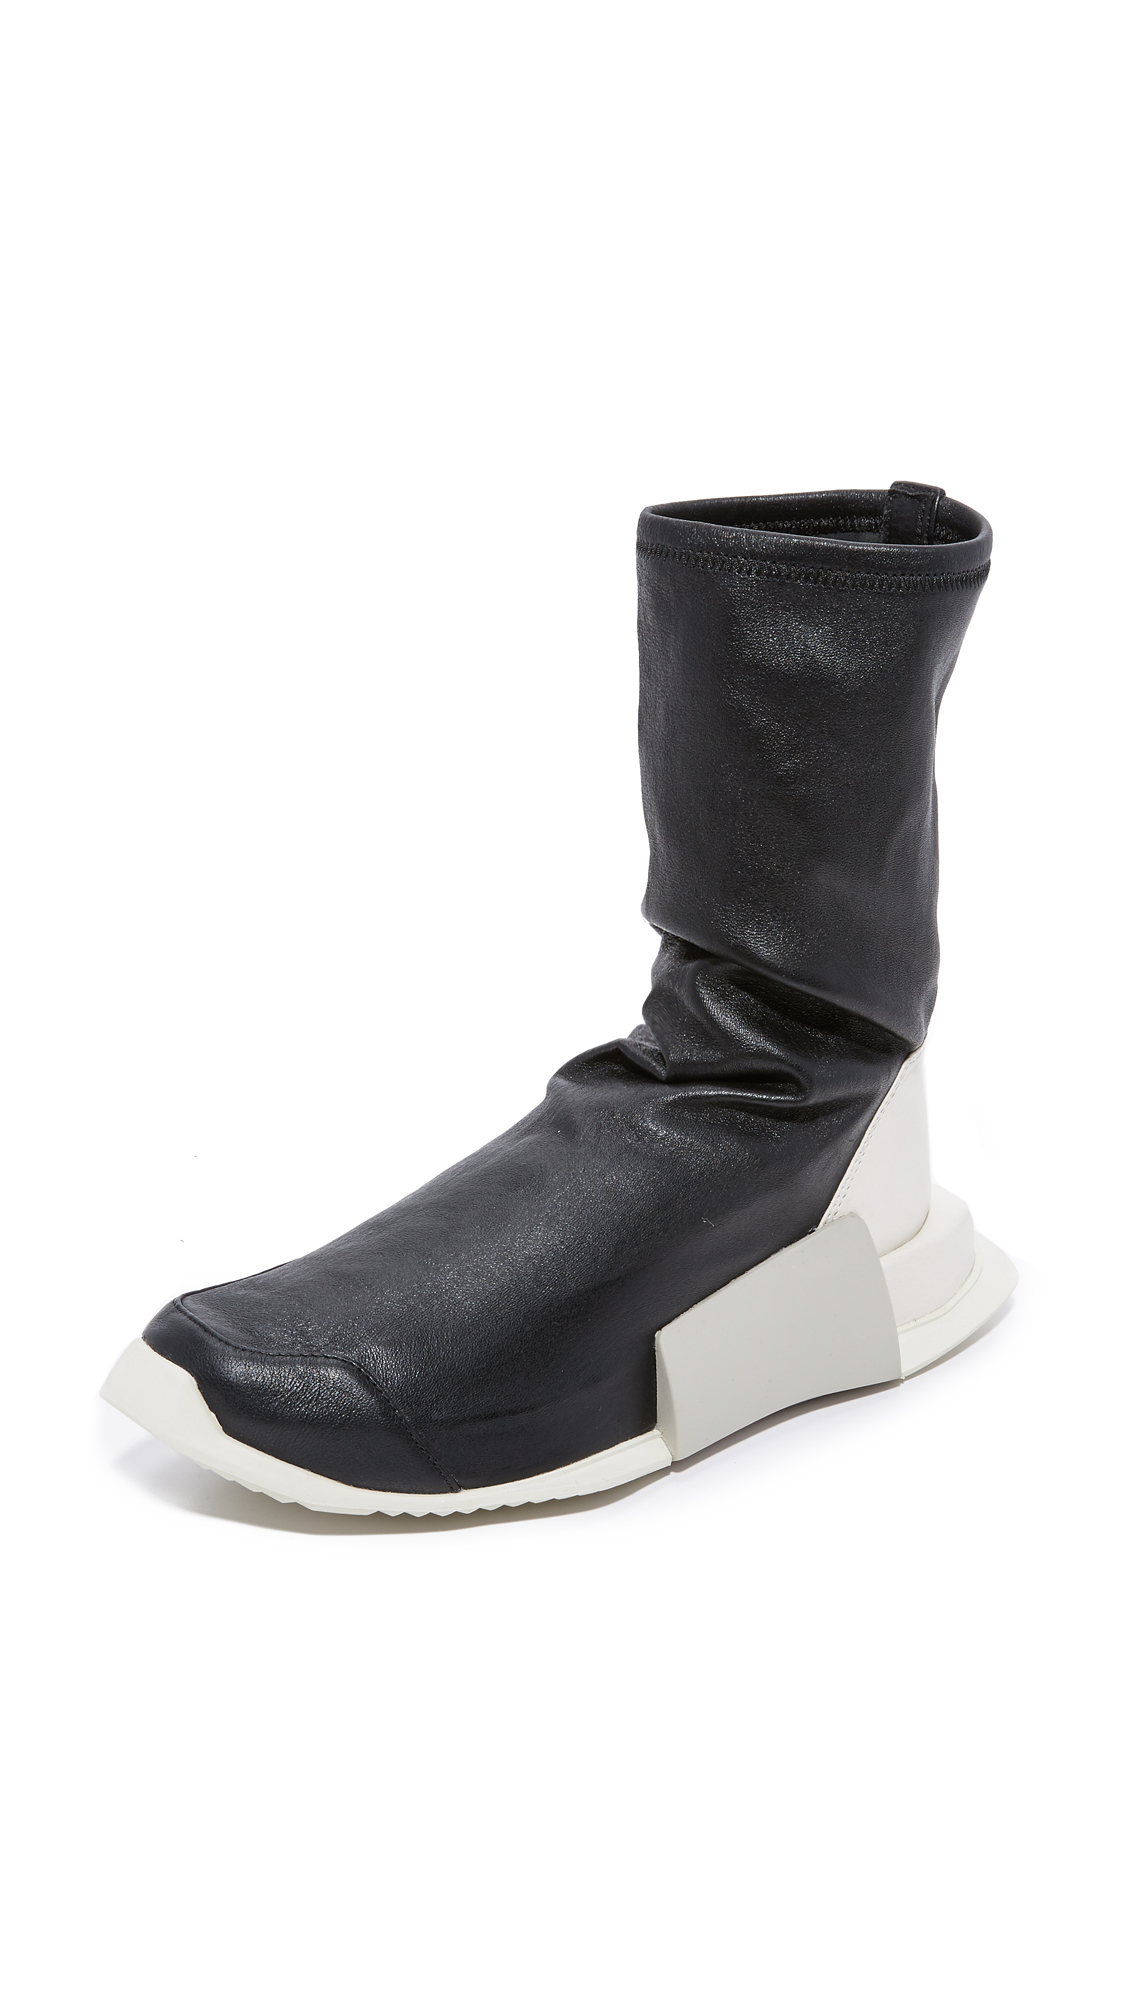 Adidas Adidas X Rick Owens Level High Runners - Black/Milk/Dinge at Shopbop